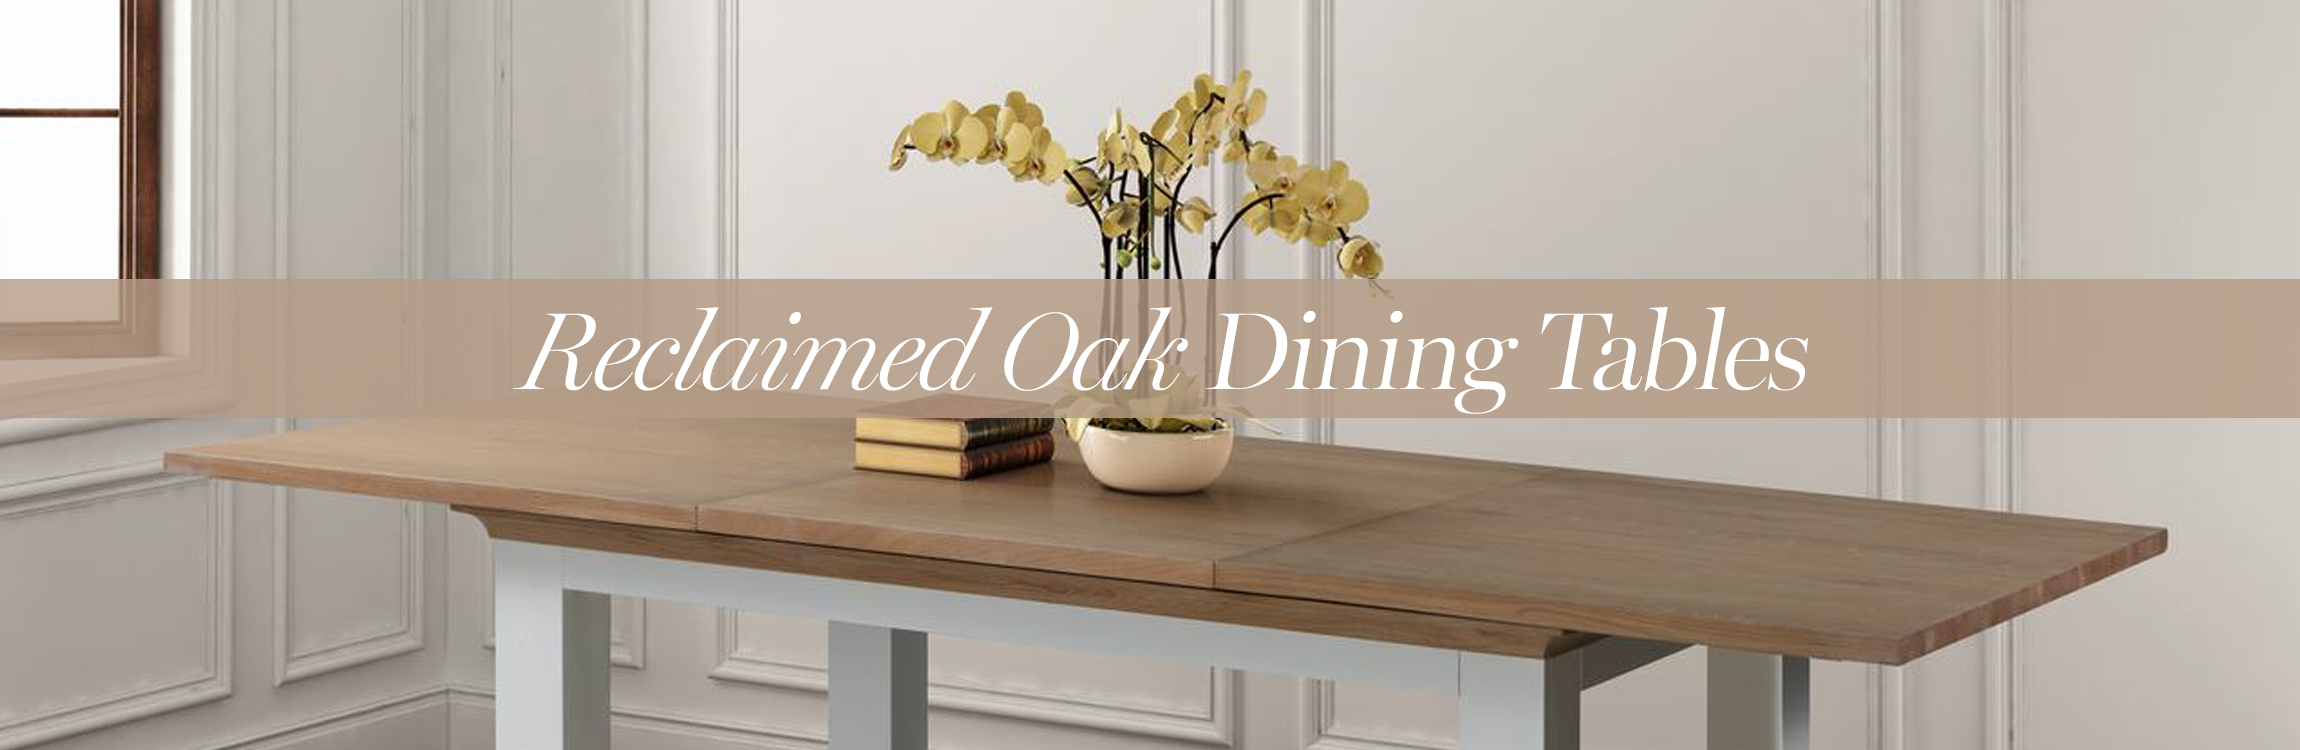 Reclaimed Oak Dining tables